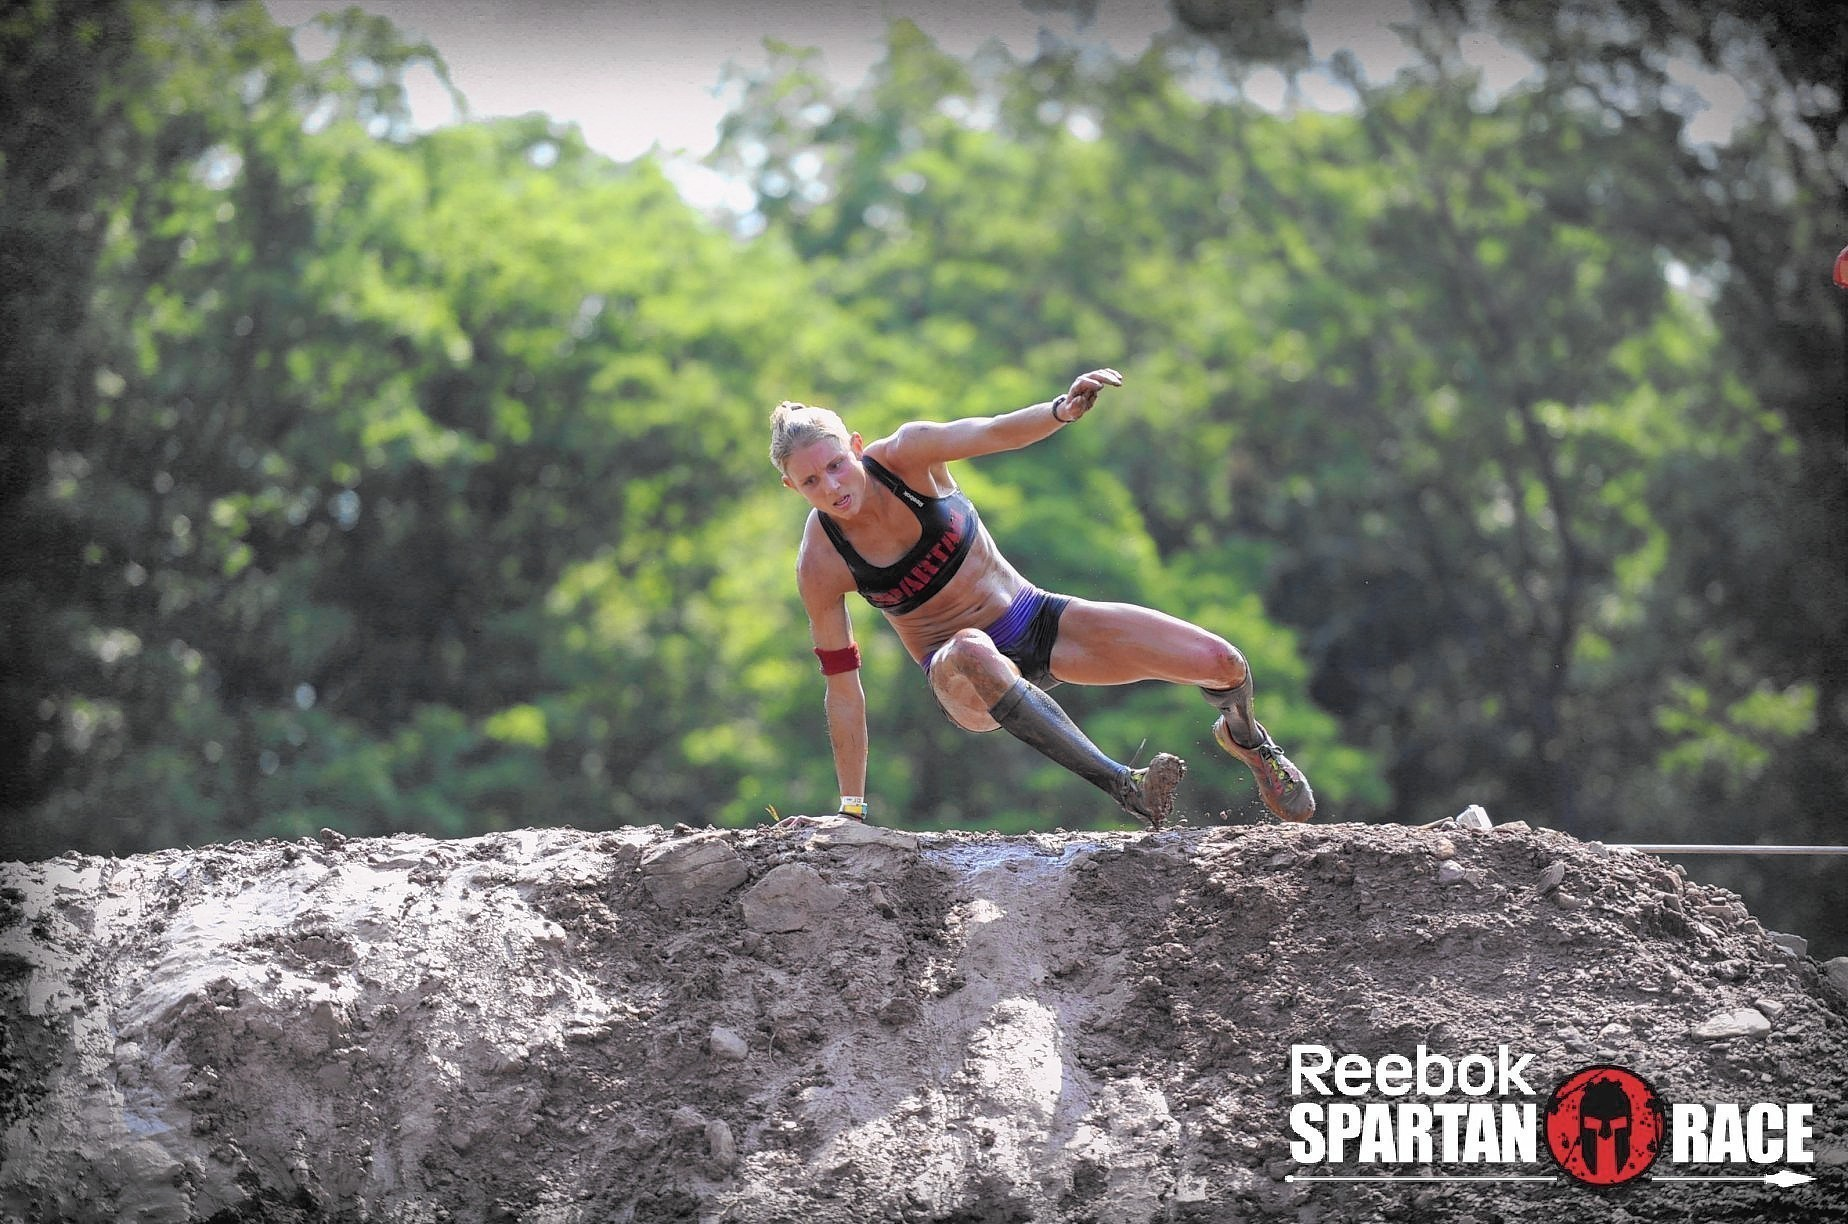 Spartan Race Las Vegas >> Obstacle racer Amelia Boone takes grit to a whole new ...